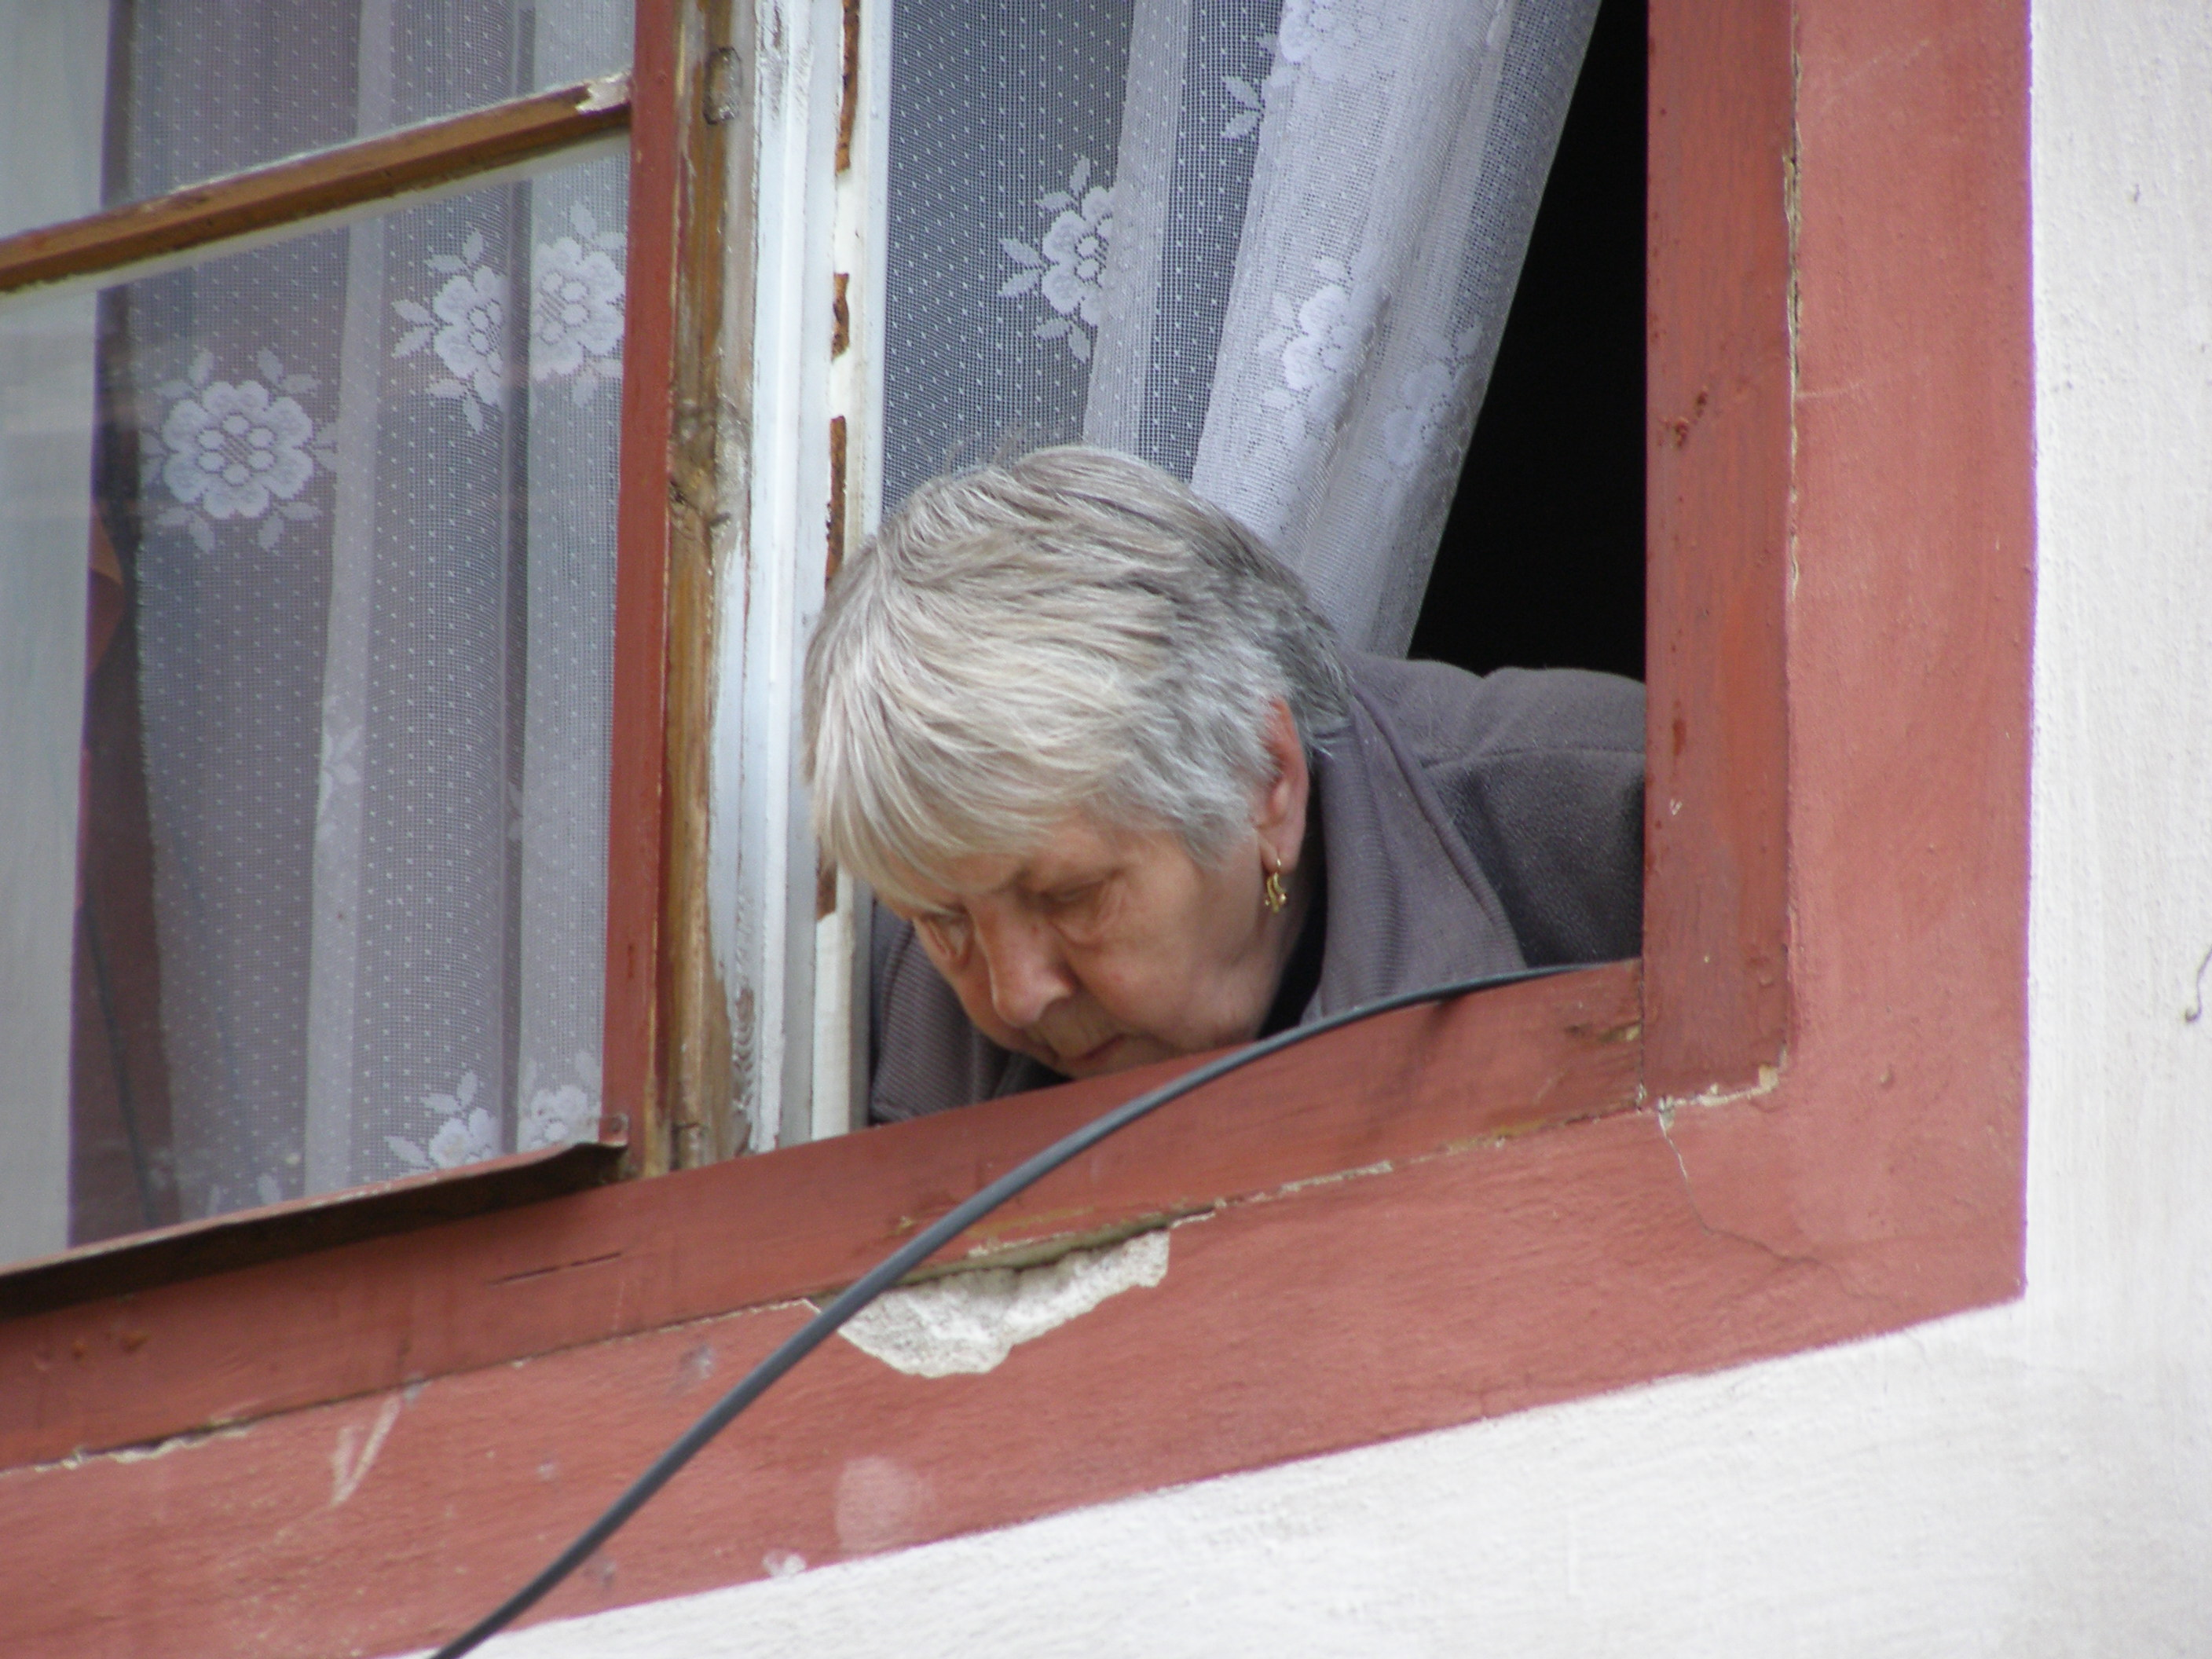 Photo by Erich Ferdinand of an old woman leaning out the window.